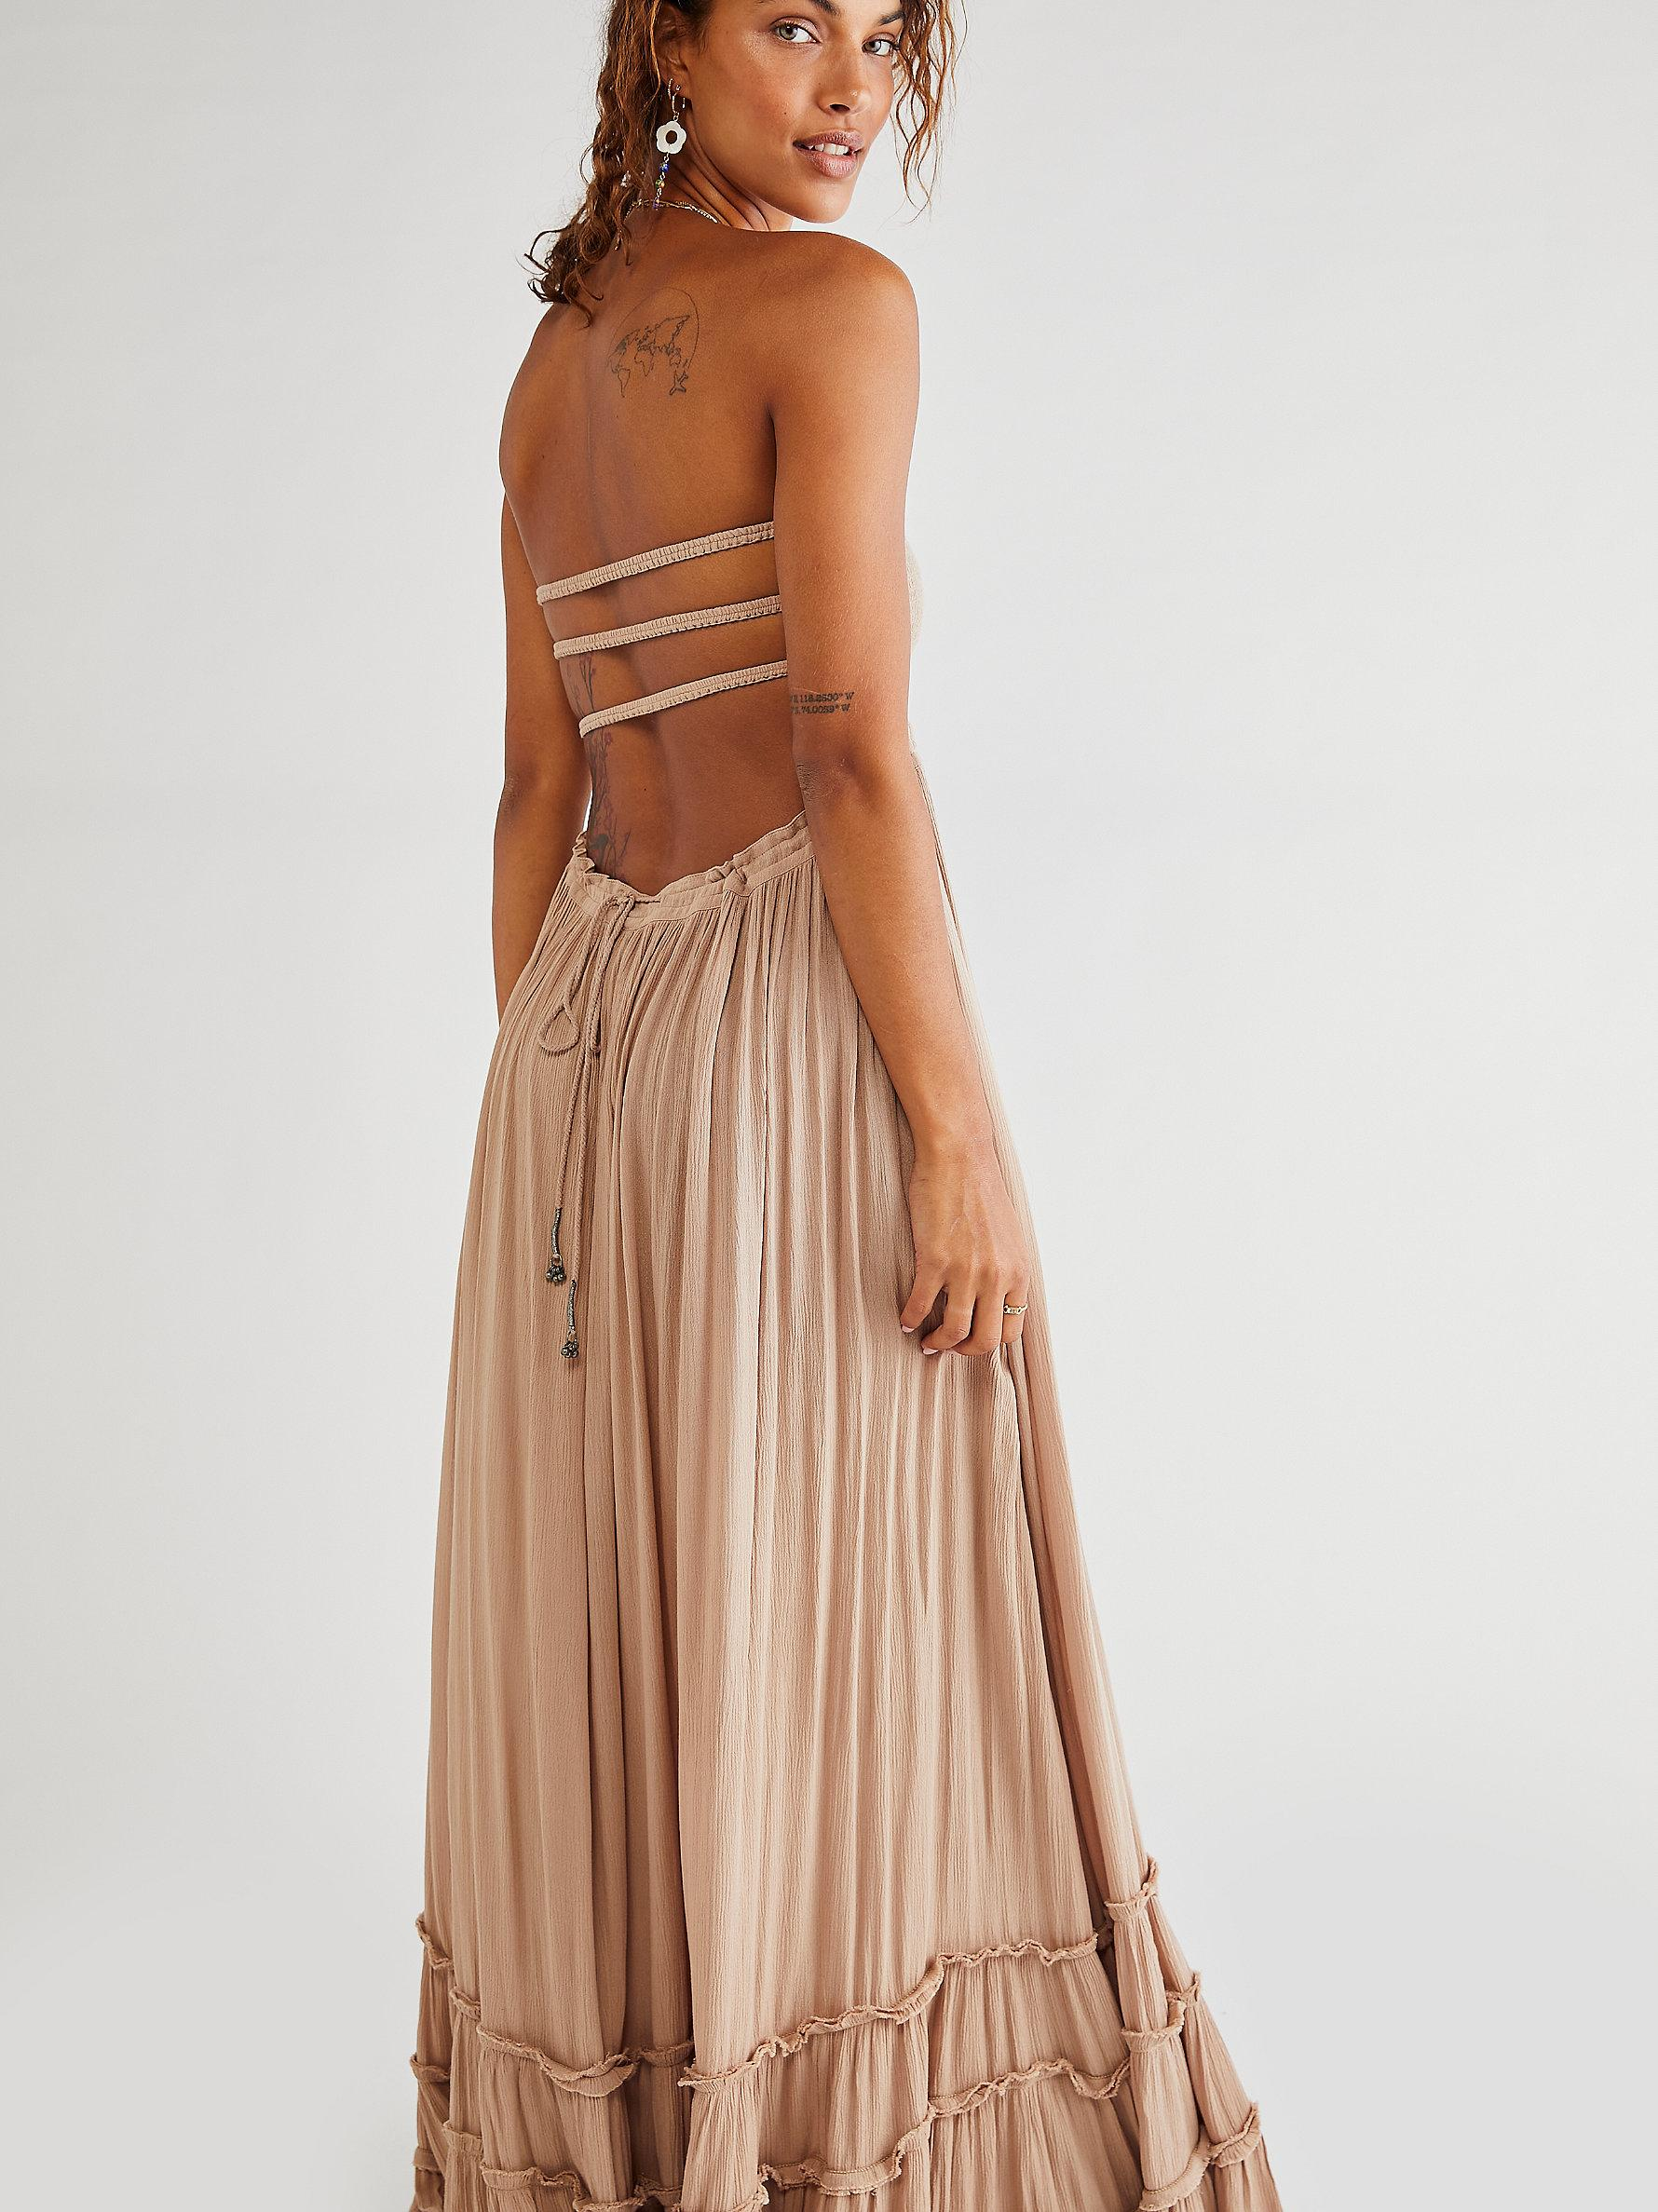 Free People Extratropical Jersey Maxi Dress in Taupe Brown   Lyst